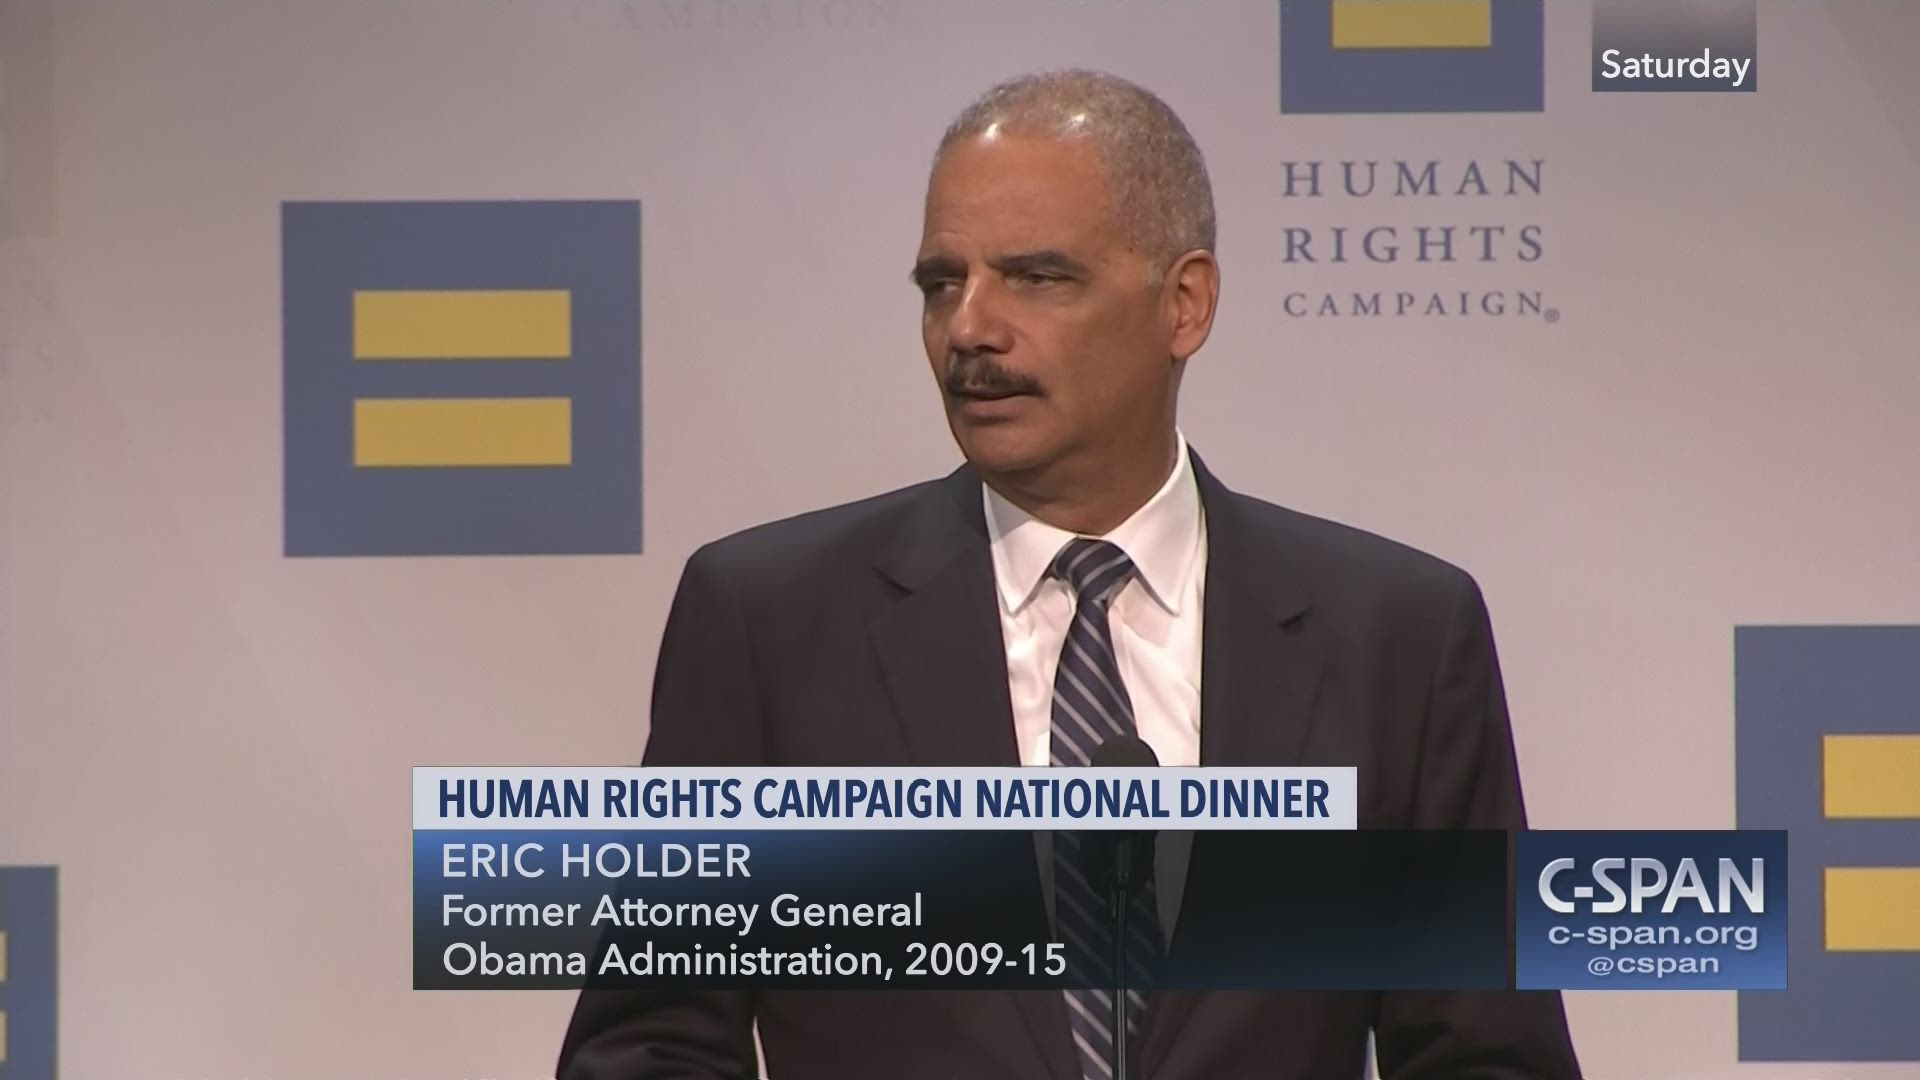 Human Rights Campaign Dinner, Eric Holder and Anne Hathaway